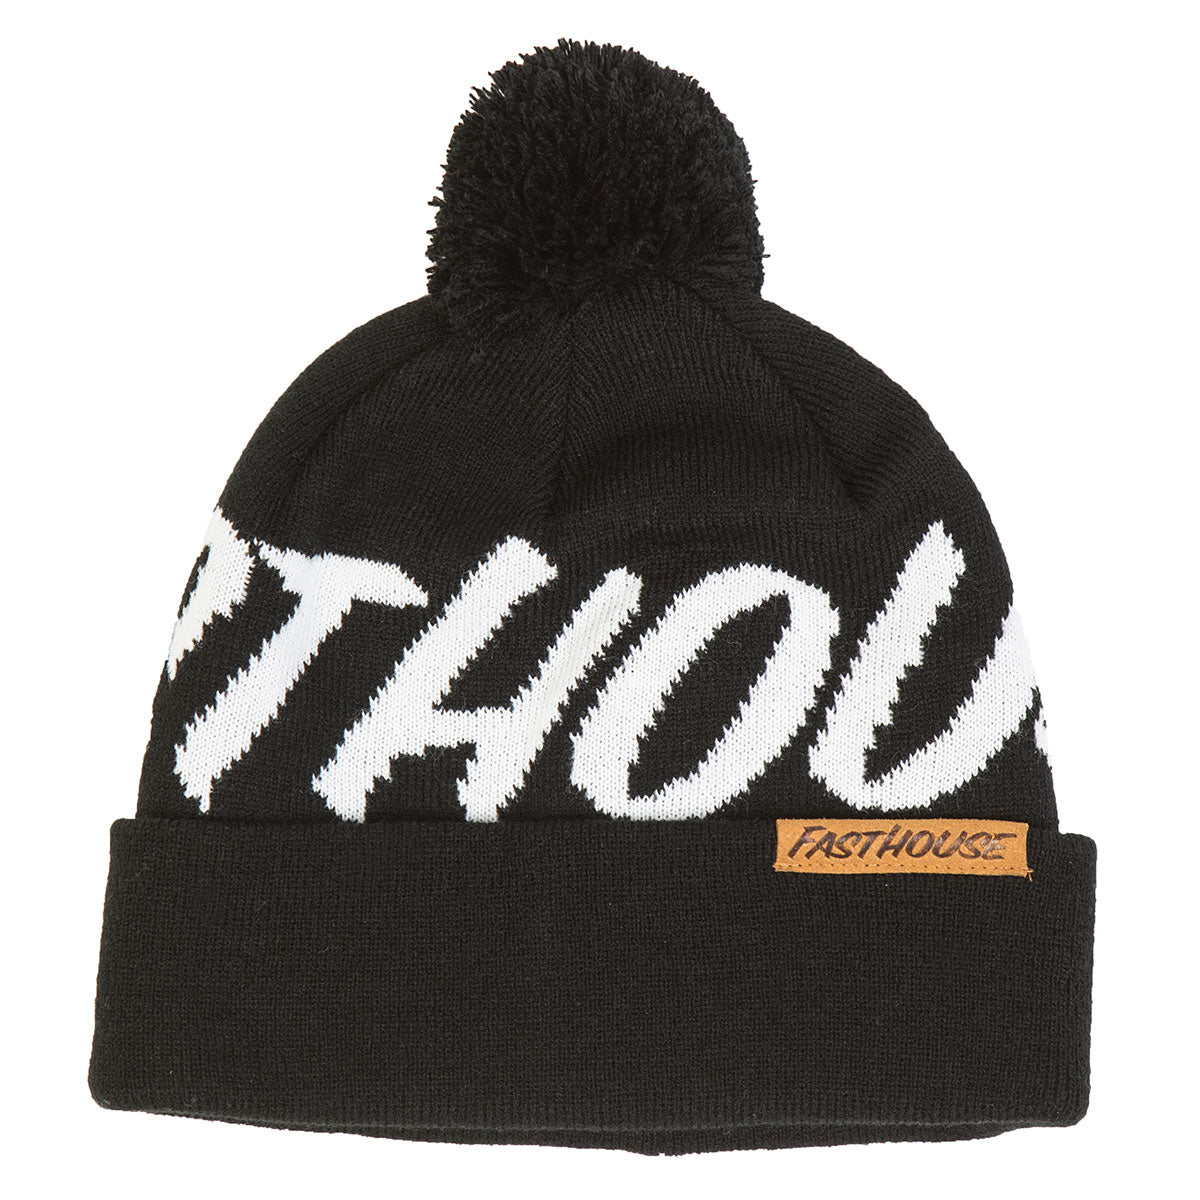 Fasthouse - Fastball Beanie - Black